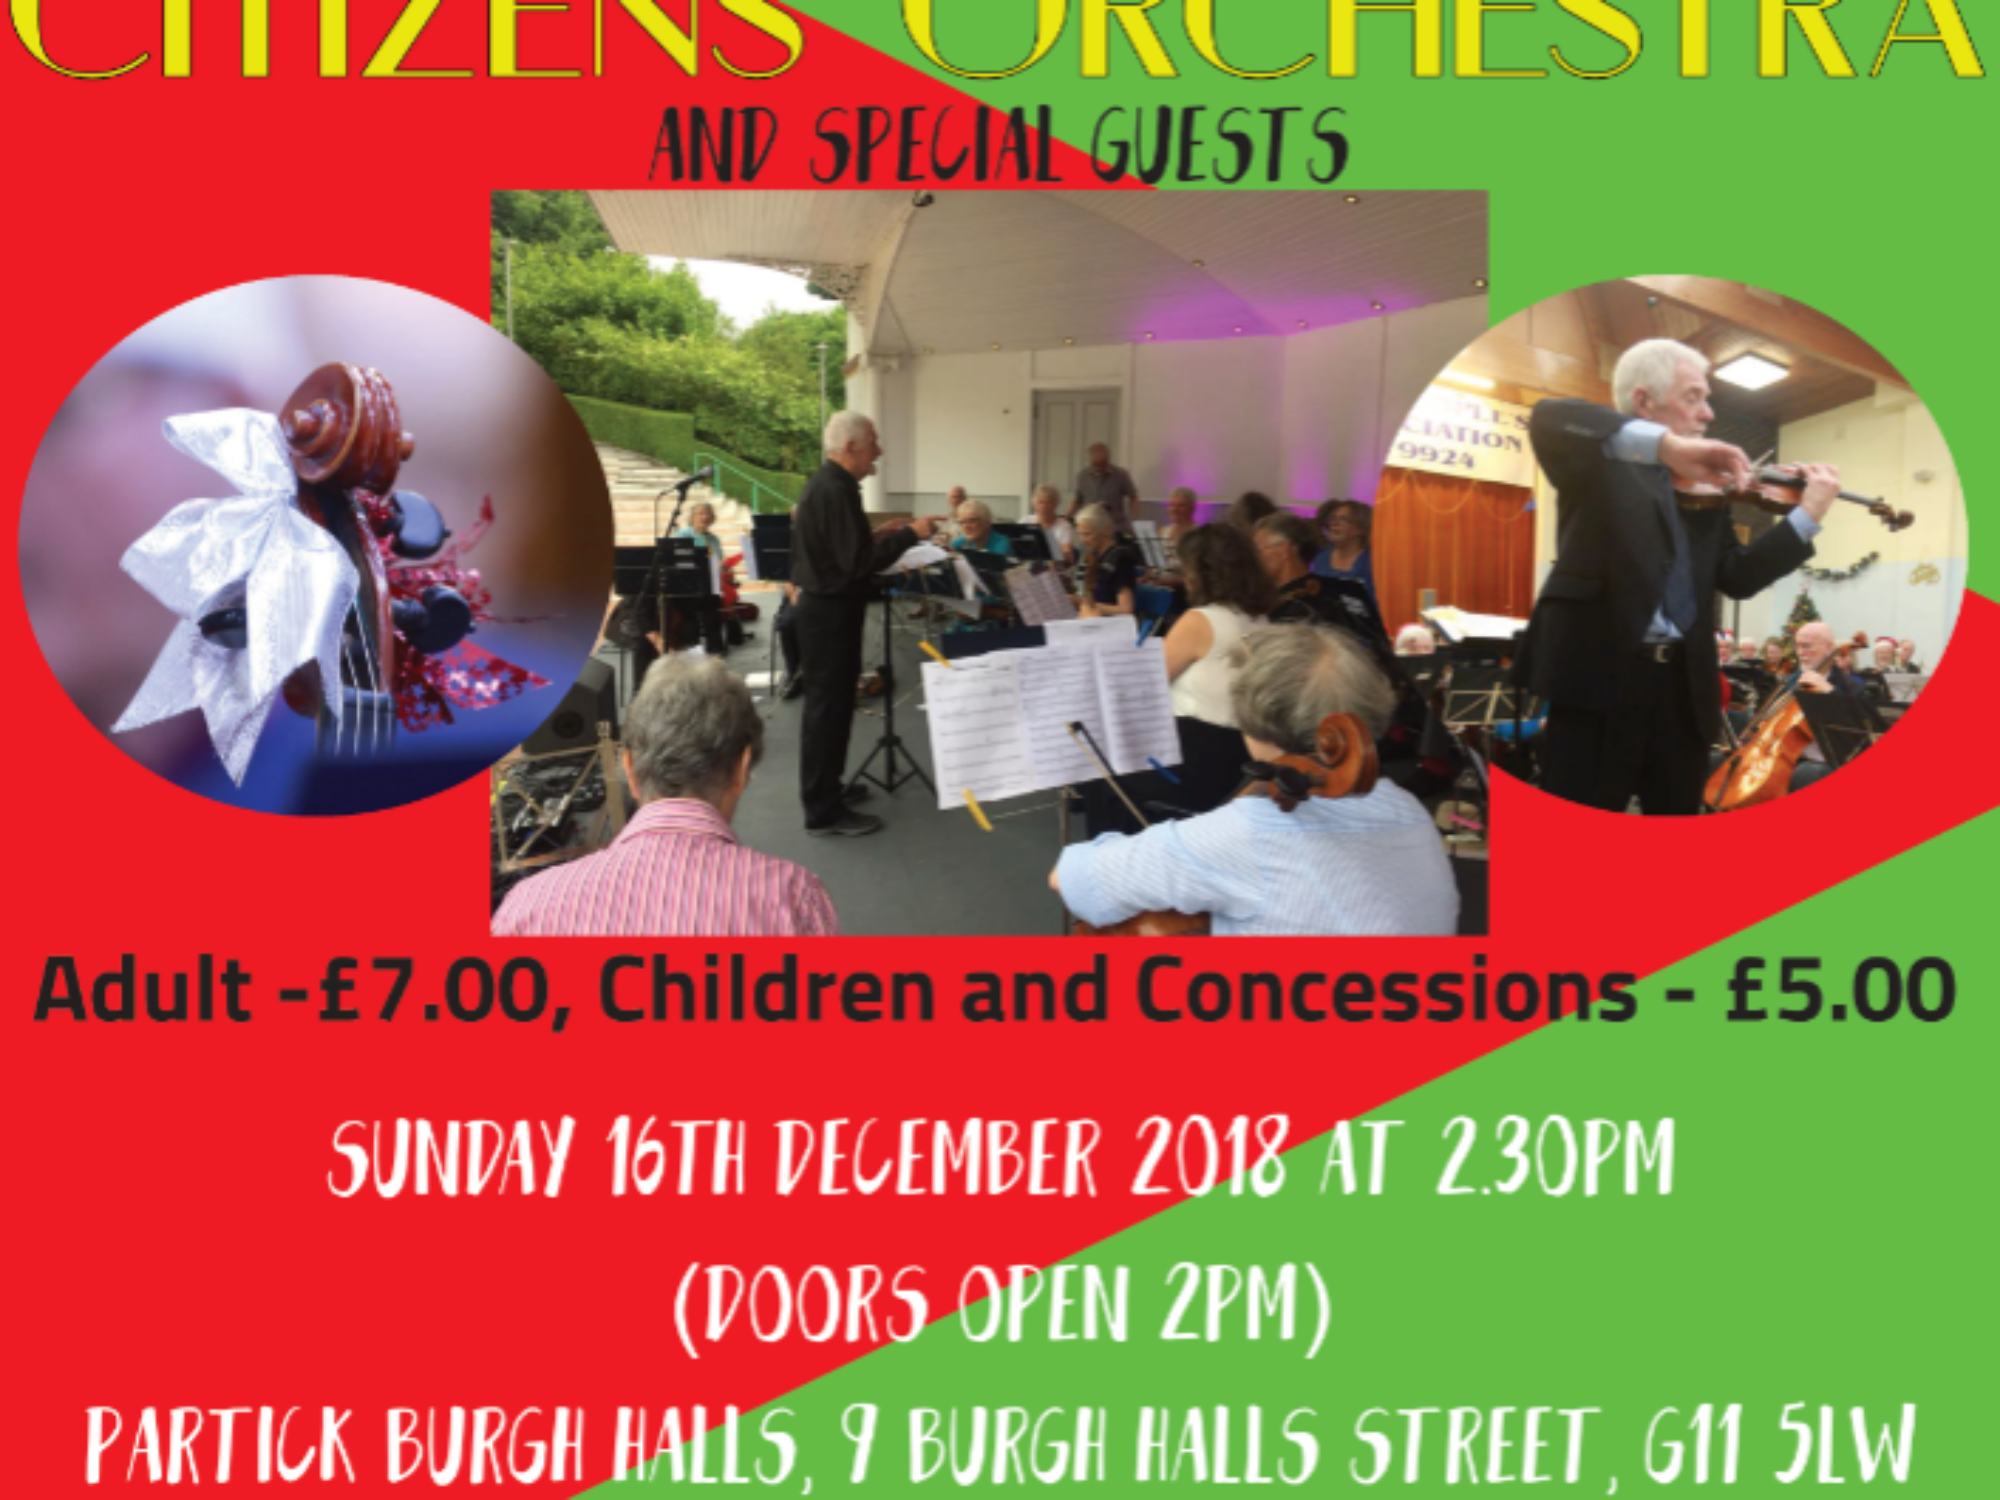 Glasgow's Golden Generation Christmas Concert